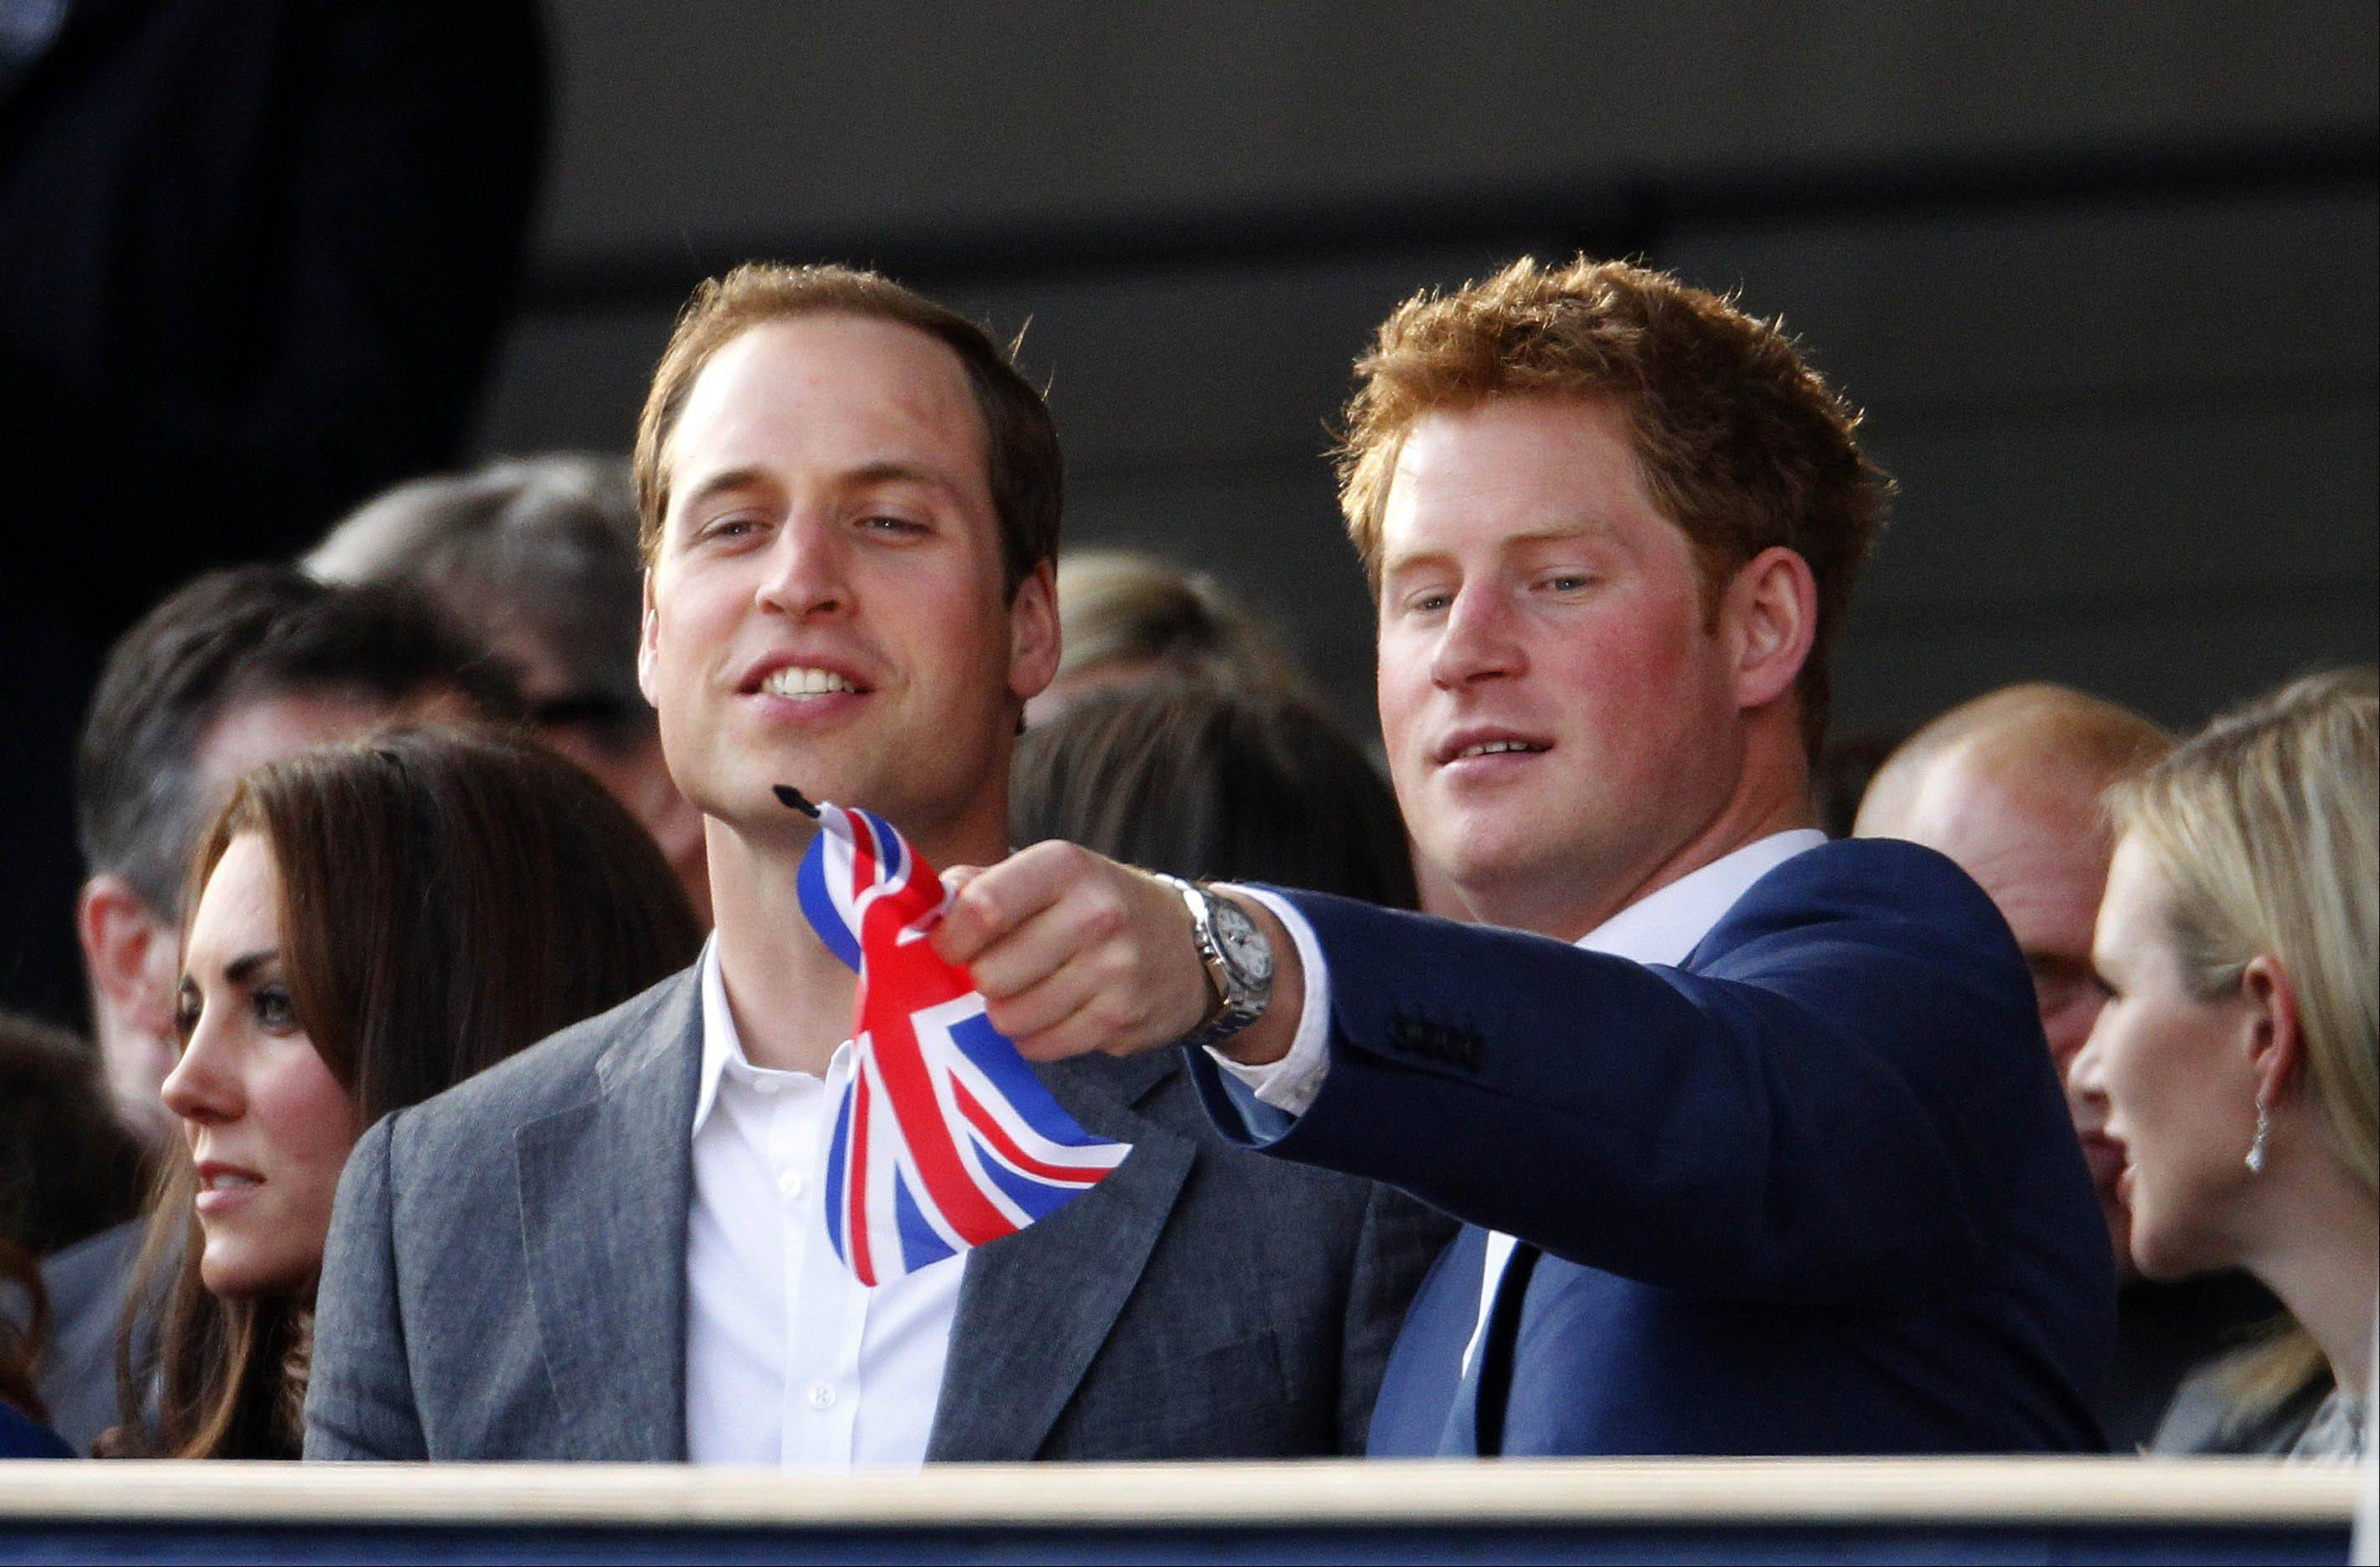 The Duke of Cambridge with Prince Harry, right, attend the Diamond Jubilee concert in London Monday June 4, 2012. Thousands of flag-waving fans gathered to watch British music royalty celebrate Queen Elizabeth II on Monday with a Buckingham Palace concert featuring acts from throughout her 60-year-reign. But the queen's husband, Prince Philip, missed the concert after being hospitalized with a bladder infection. (